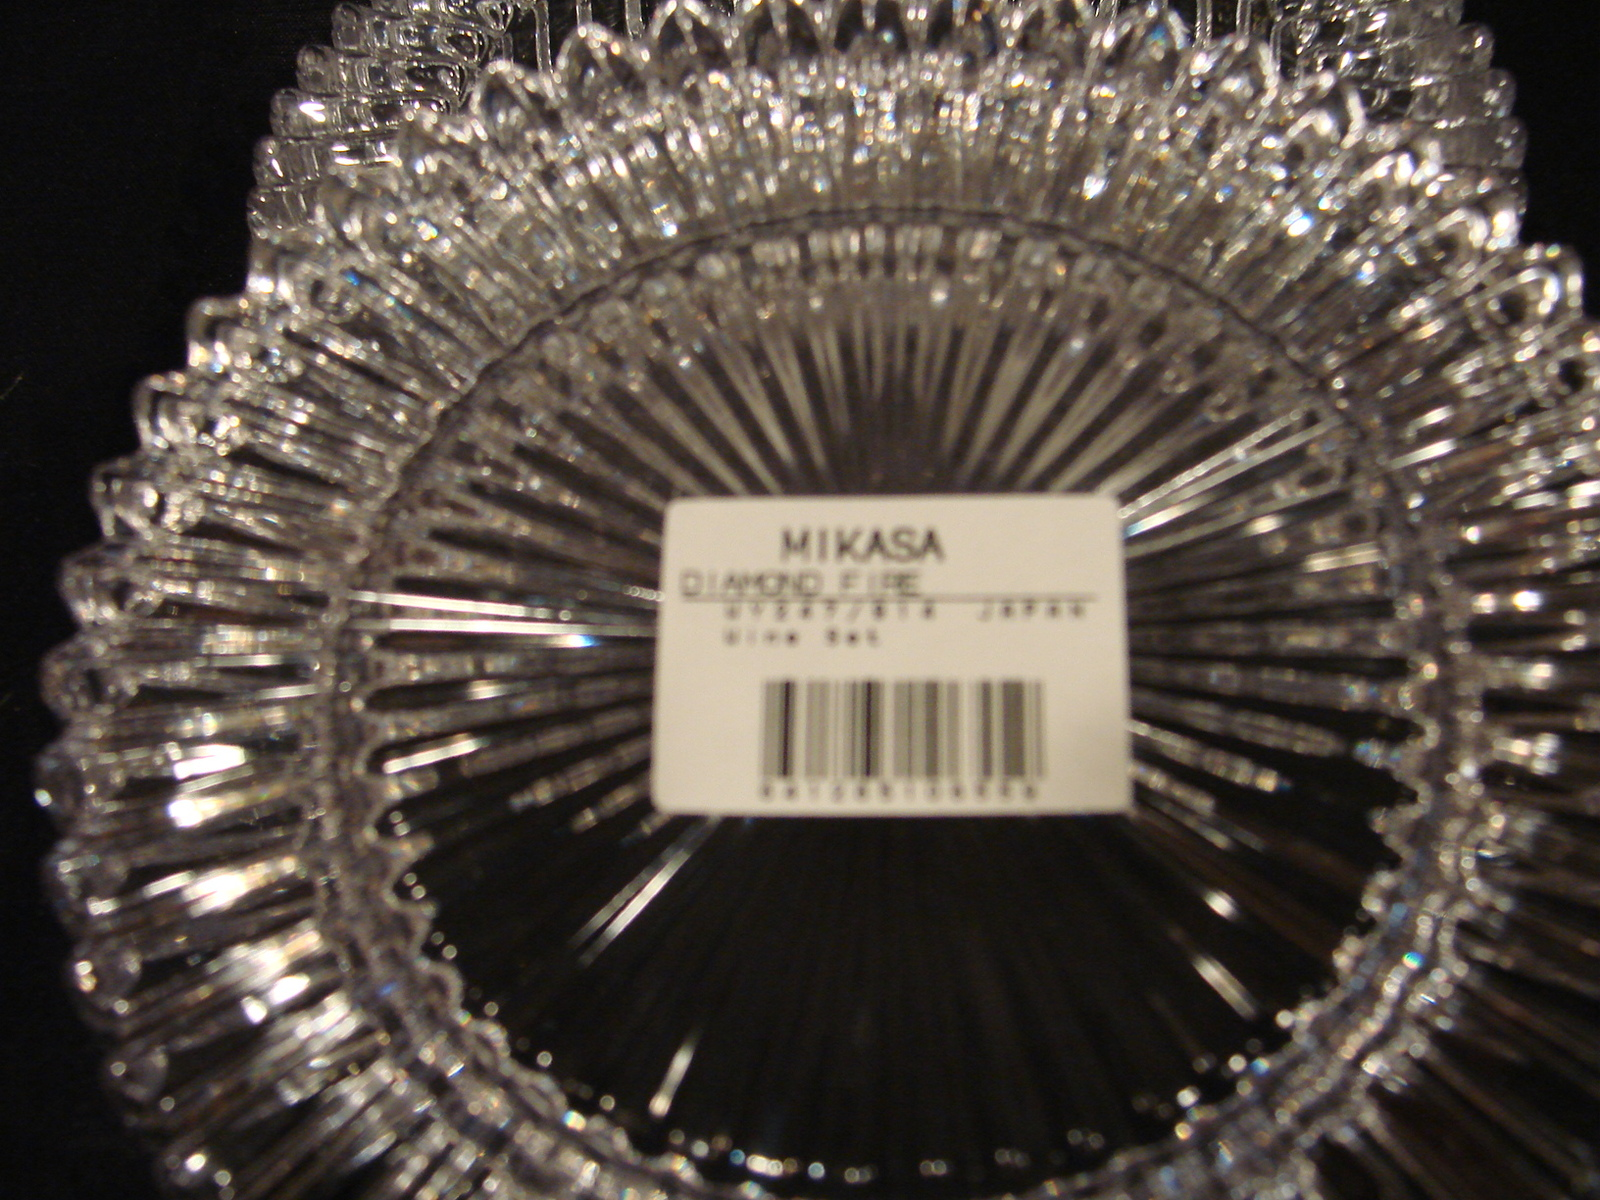 Matching Pair of Crystal Wine Coasters Diamond Fire by Mikasa image 5